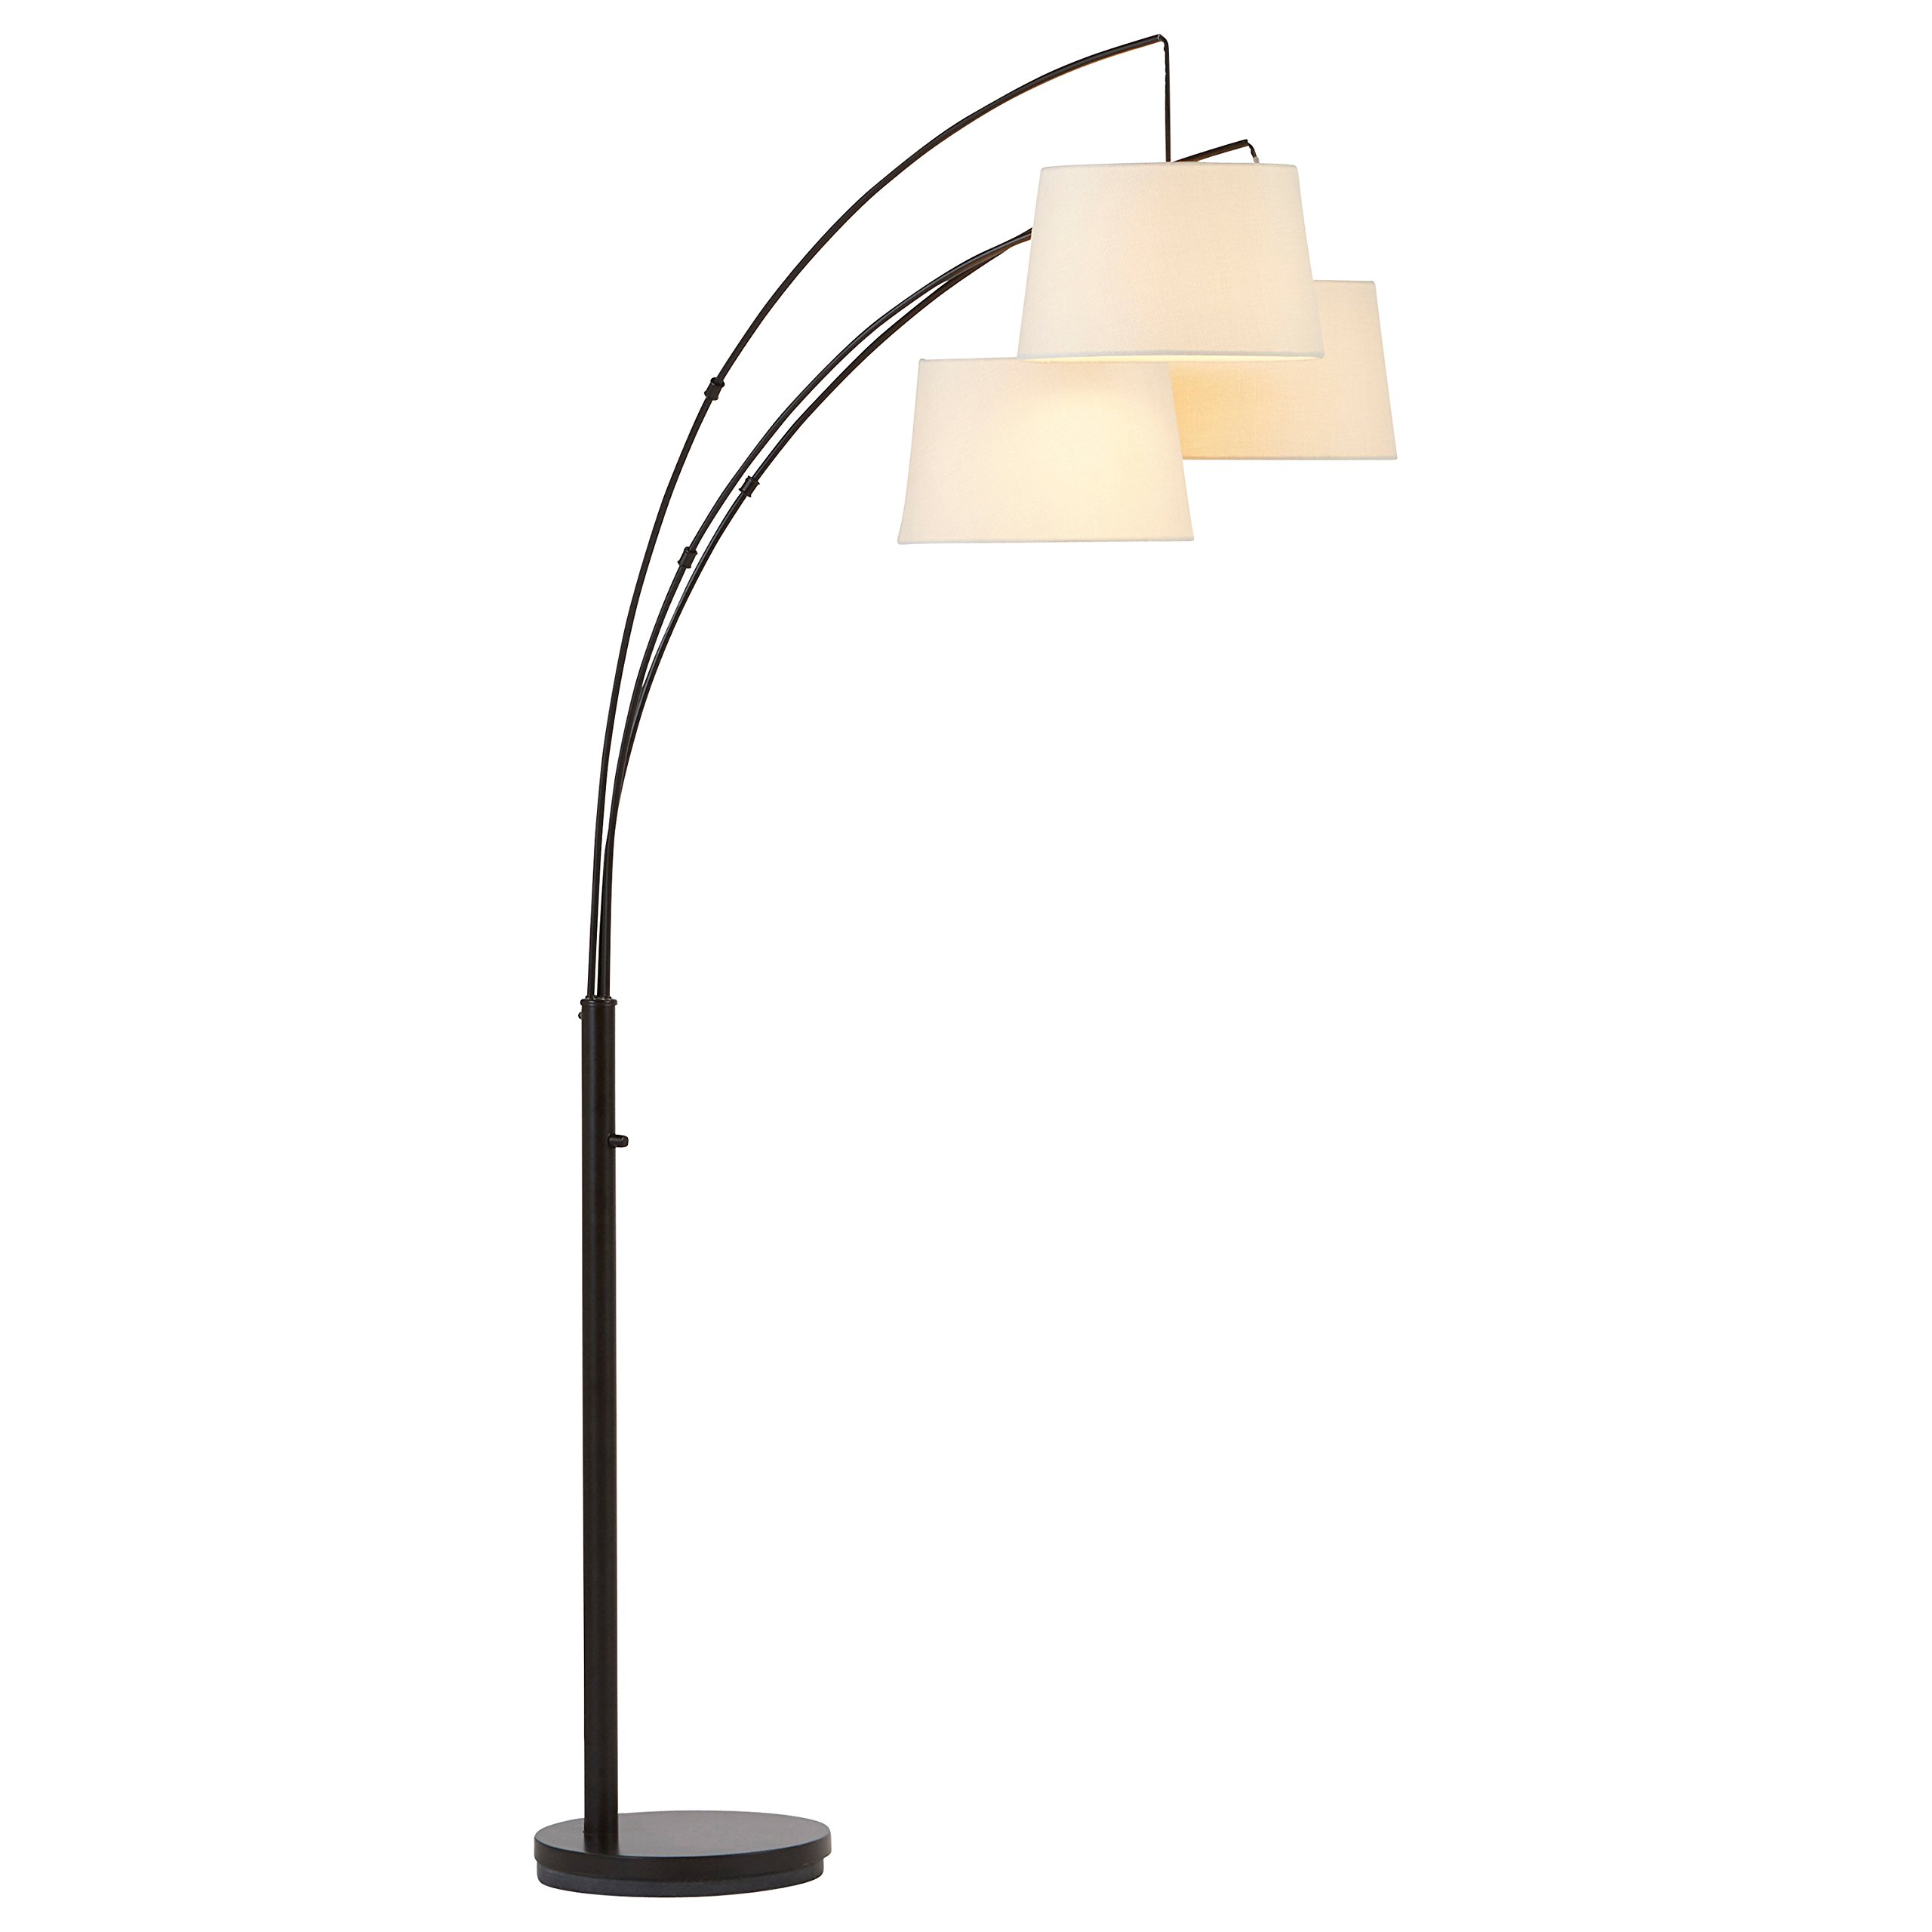 Rivet Modern Adjustable 3-Arm Floor Lamp, 77''H, With Bulbs and Burlap Shades by Rivet